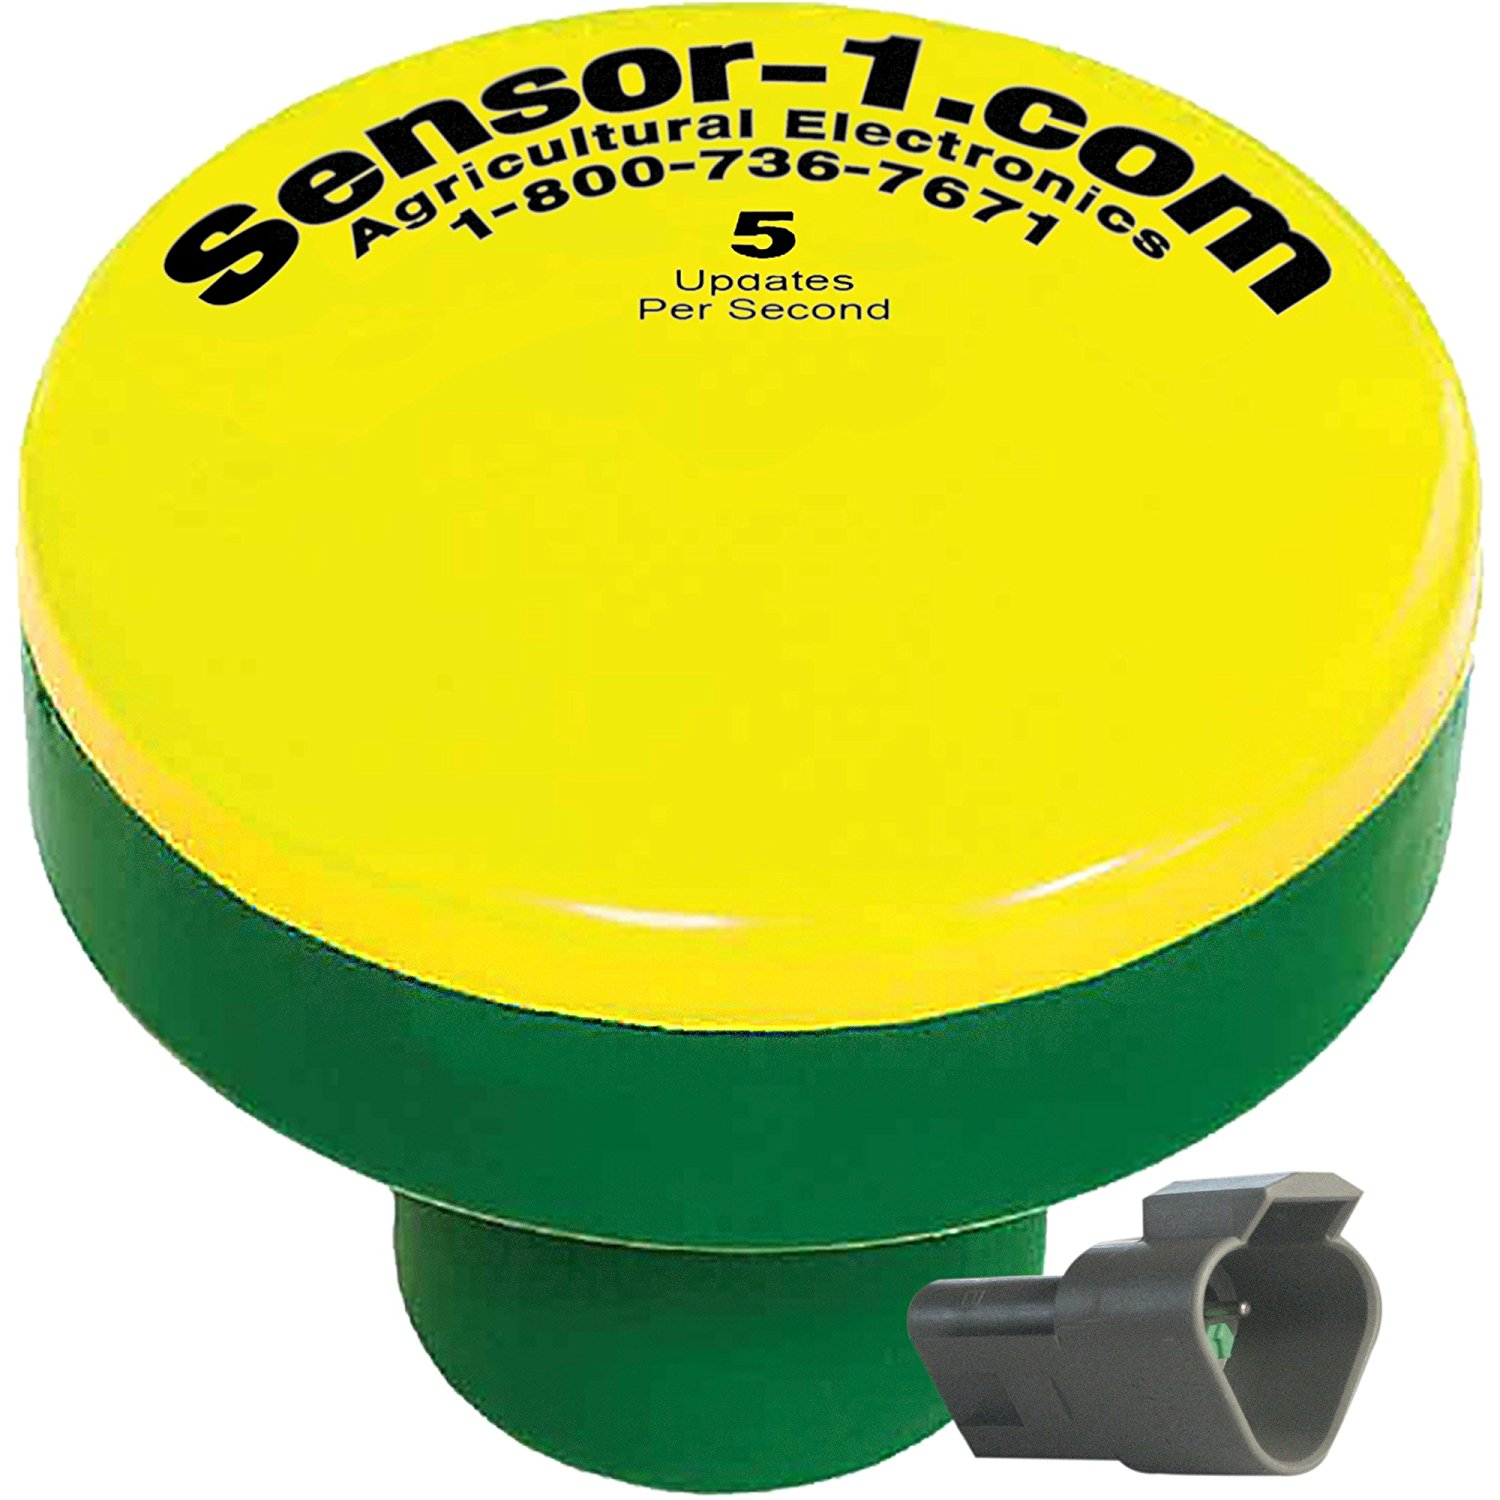 Sensor-1 DS-GPSM-TJ5-Y/G 5 Hz GPS Speed Sensor, Yellow Top and Green Stem Housing with Tee-Jet Connector